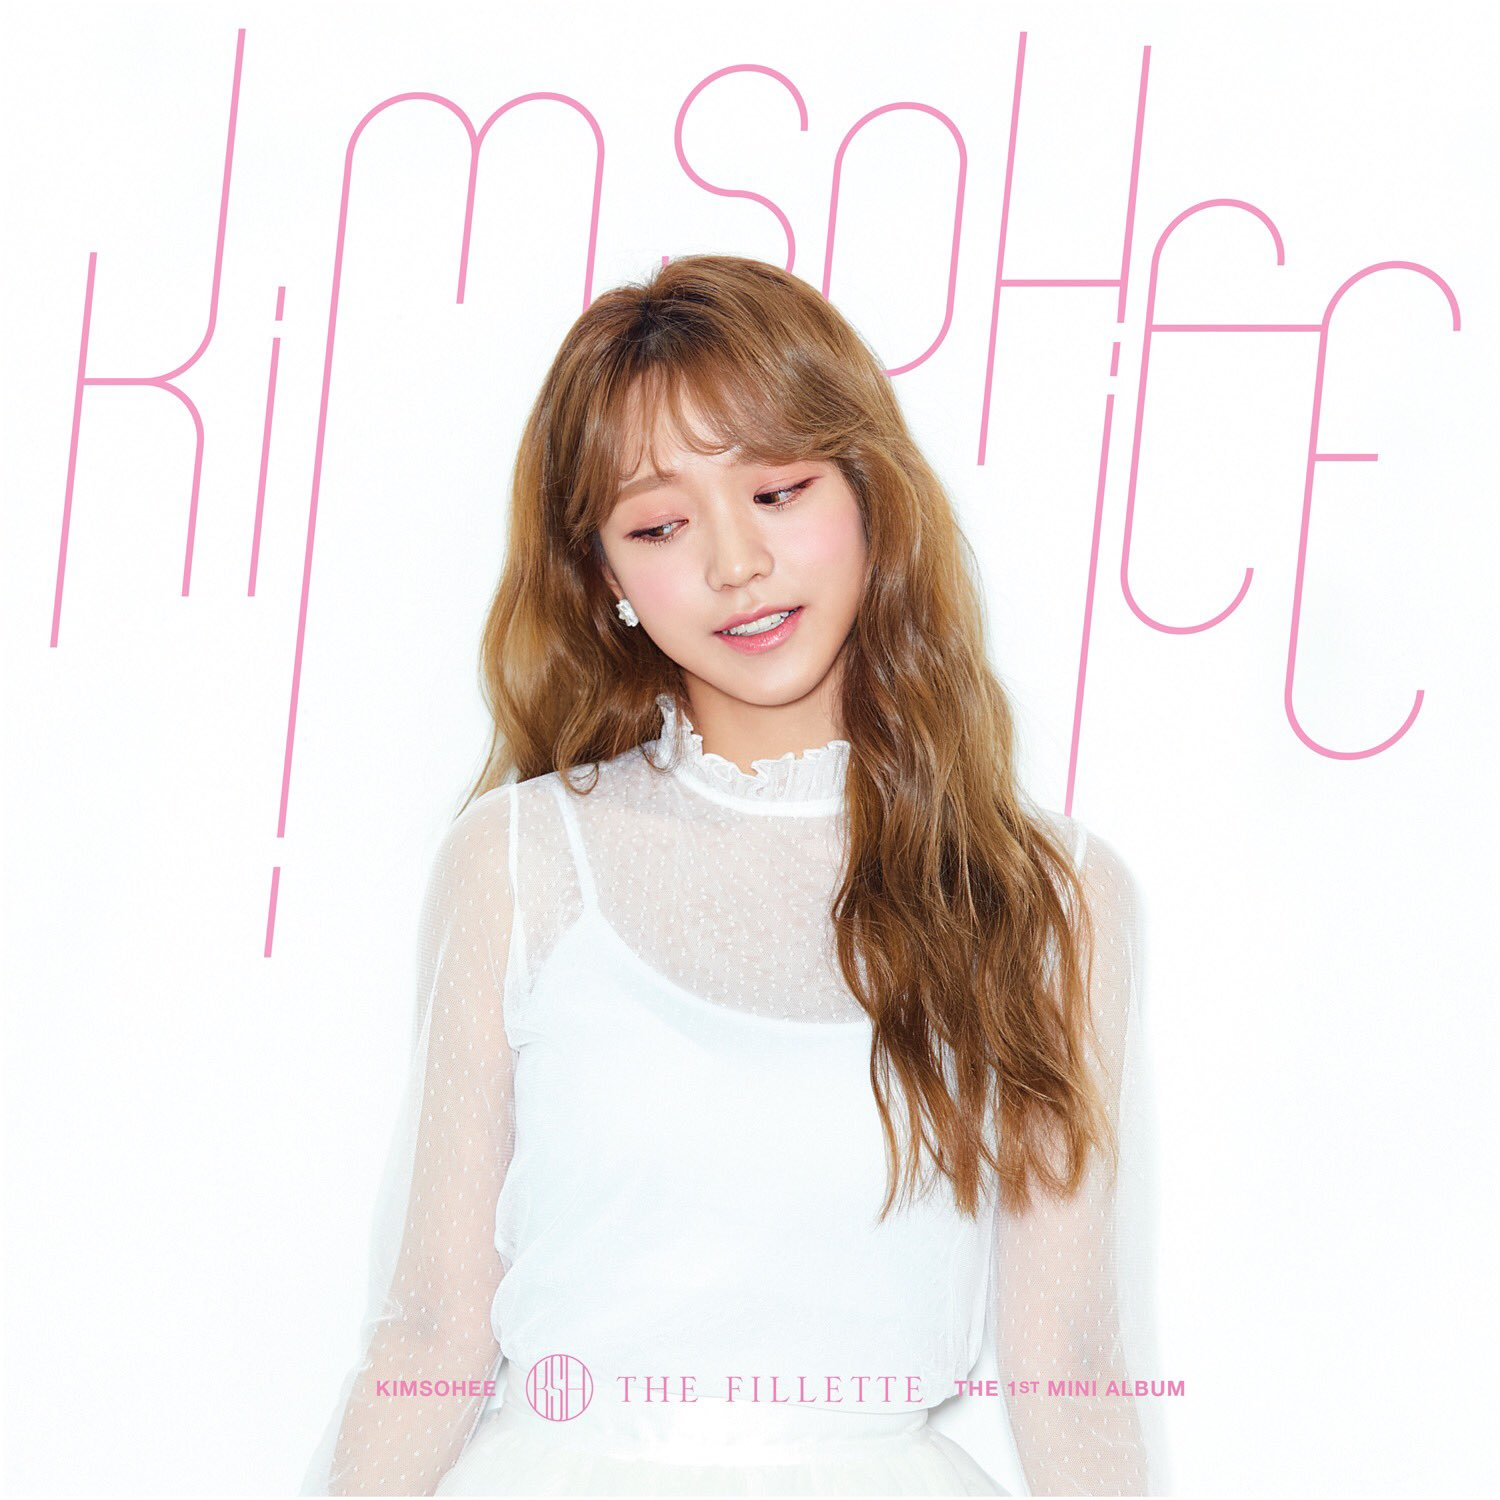 Kim Sohee The Filette